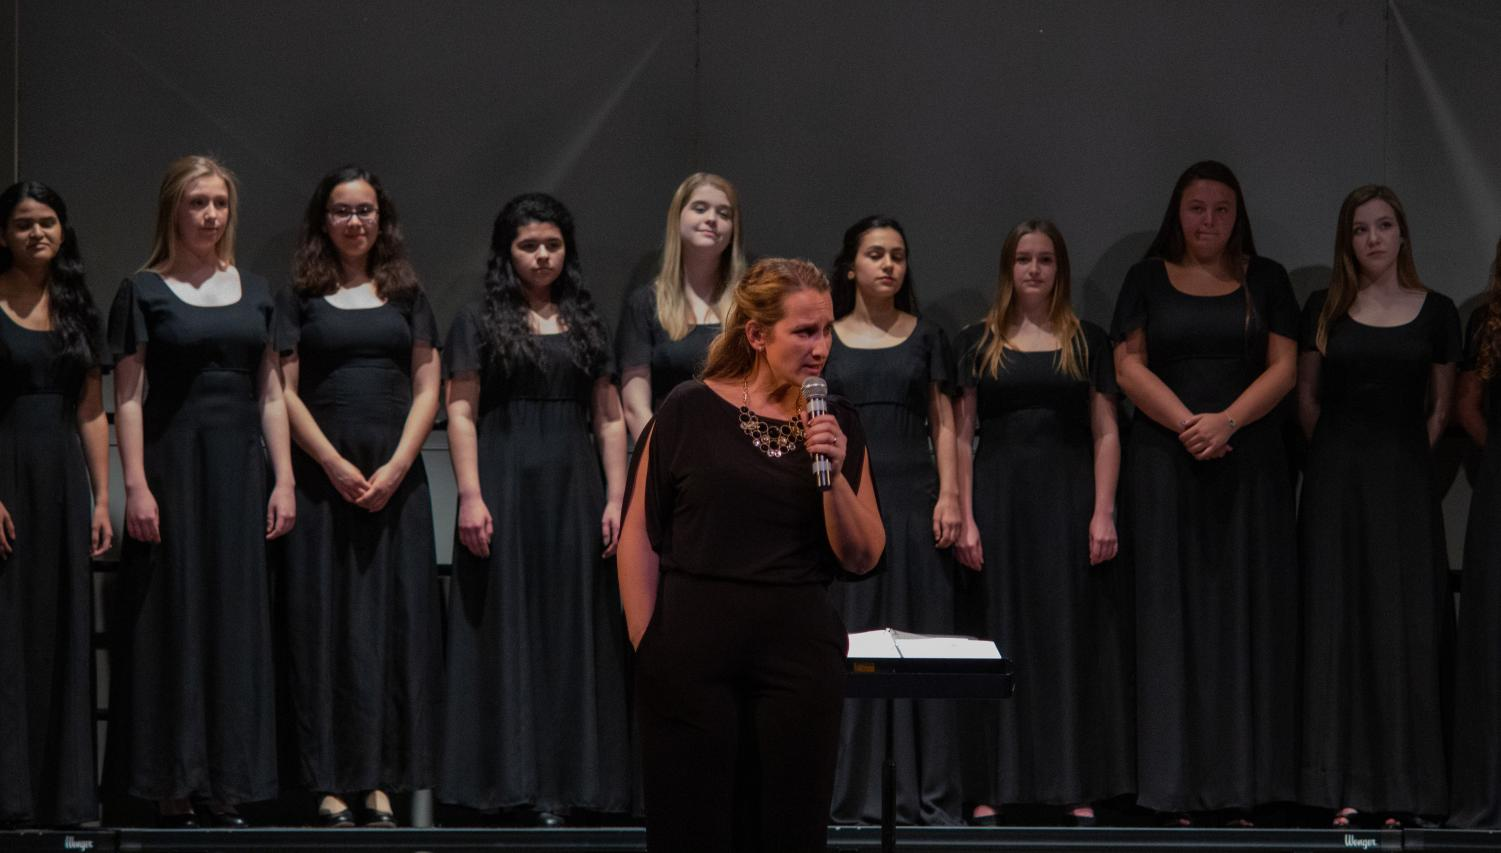 On+Thursday%2C+May+9%2C+choir+students+performed+at+their+Spring+Choir+Concert+to+show+friends+and+family+everything+they%27d+been+working+on+throughout+fourth+quarter.+Choir+students%27+next+performance+will+be+at+the+Music+Awards+Concert+at+6%3A30+p.m.+in+the+auditorium+on+Thursday%2C+May+16.